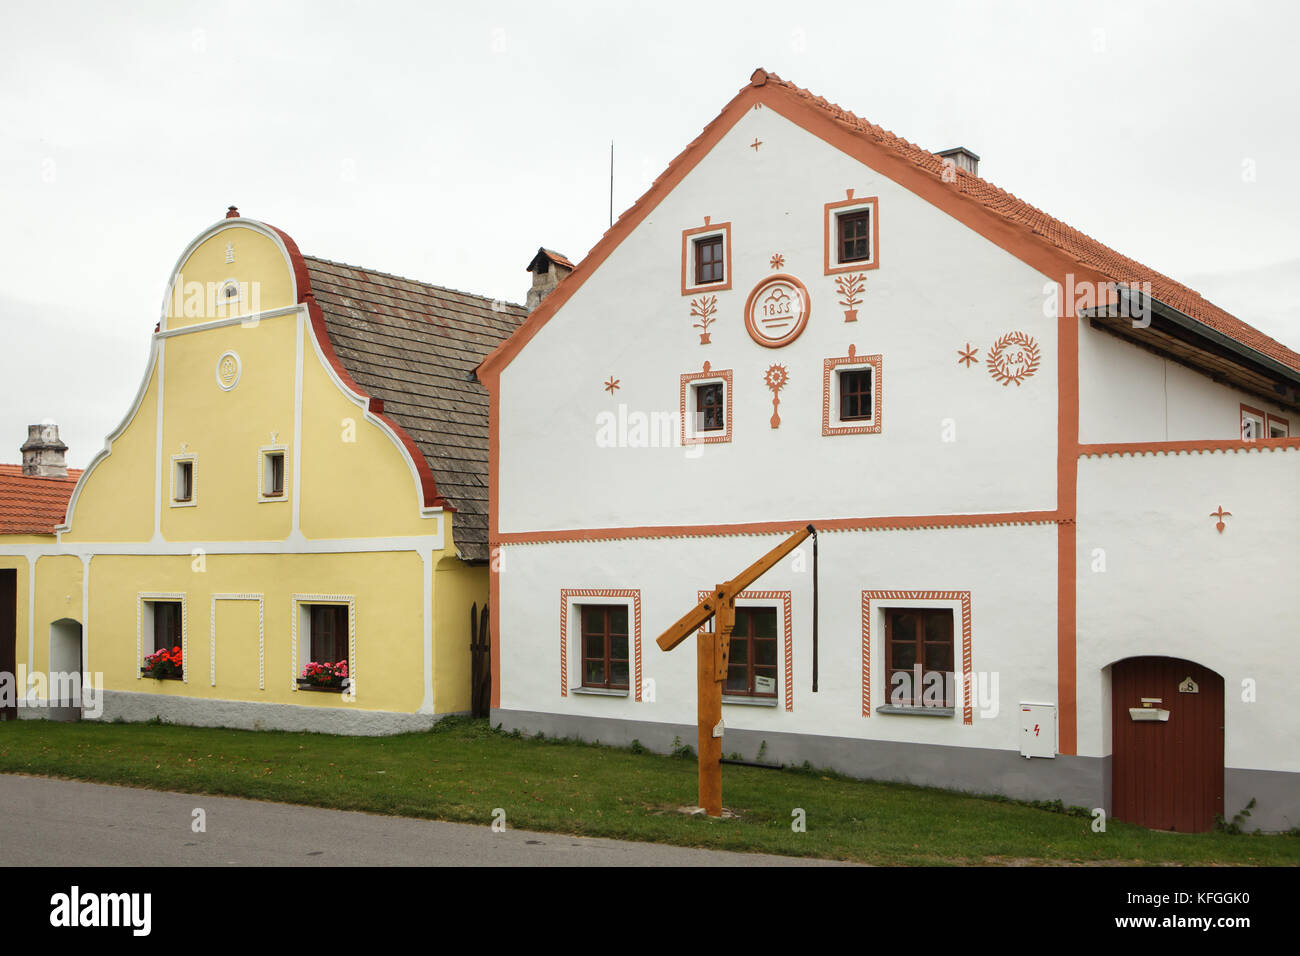 Houses In Rural Baroque Style The Historical Village Of Holasovice South Bohemia Czech Republic